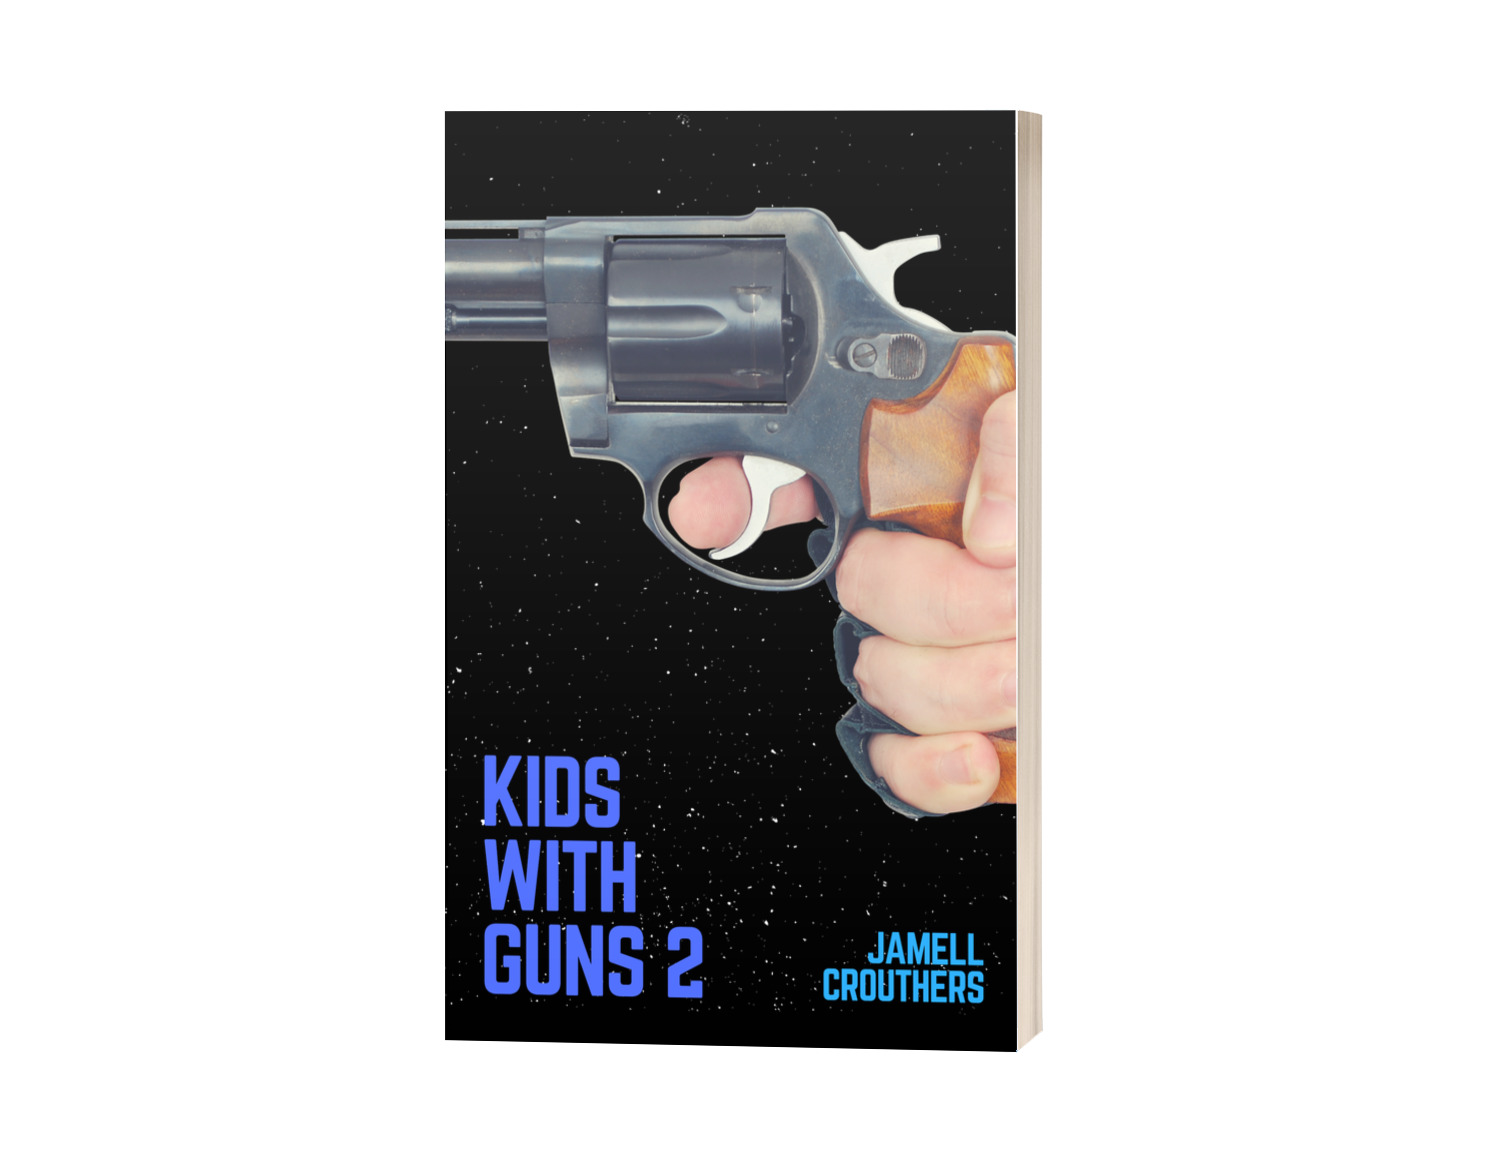 Kids With Guns Part 2 focuses on the aftermath of a school shooting and how a community comes together during tumultuous times.